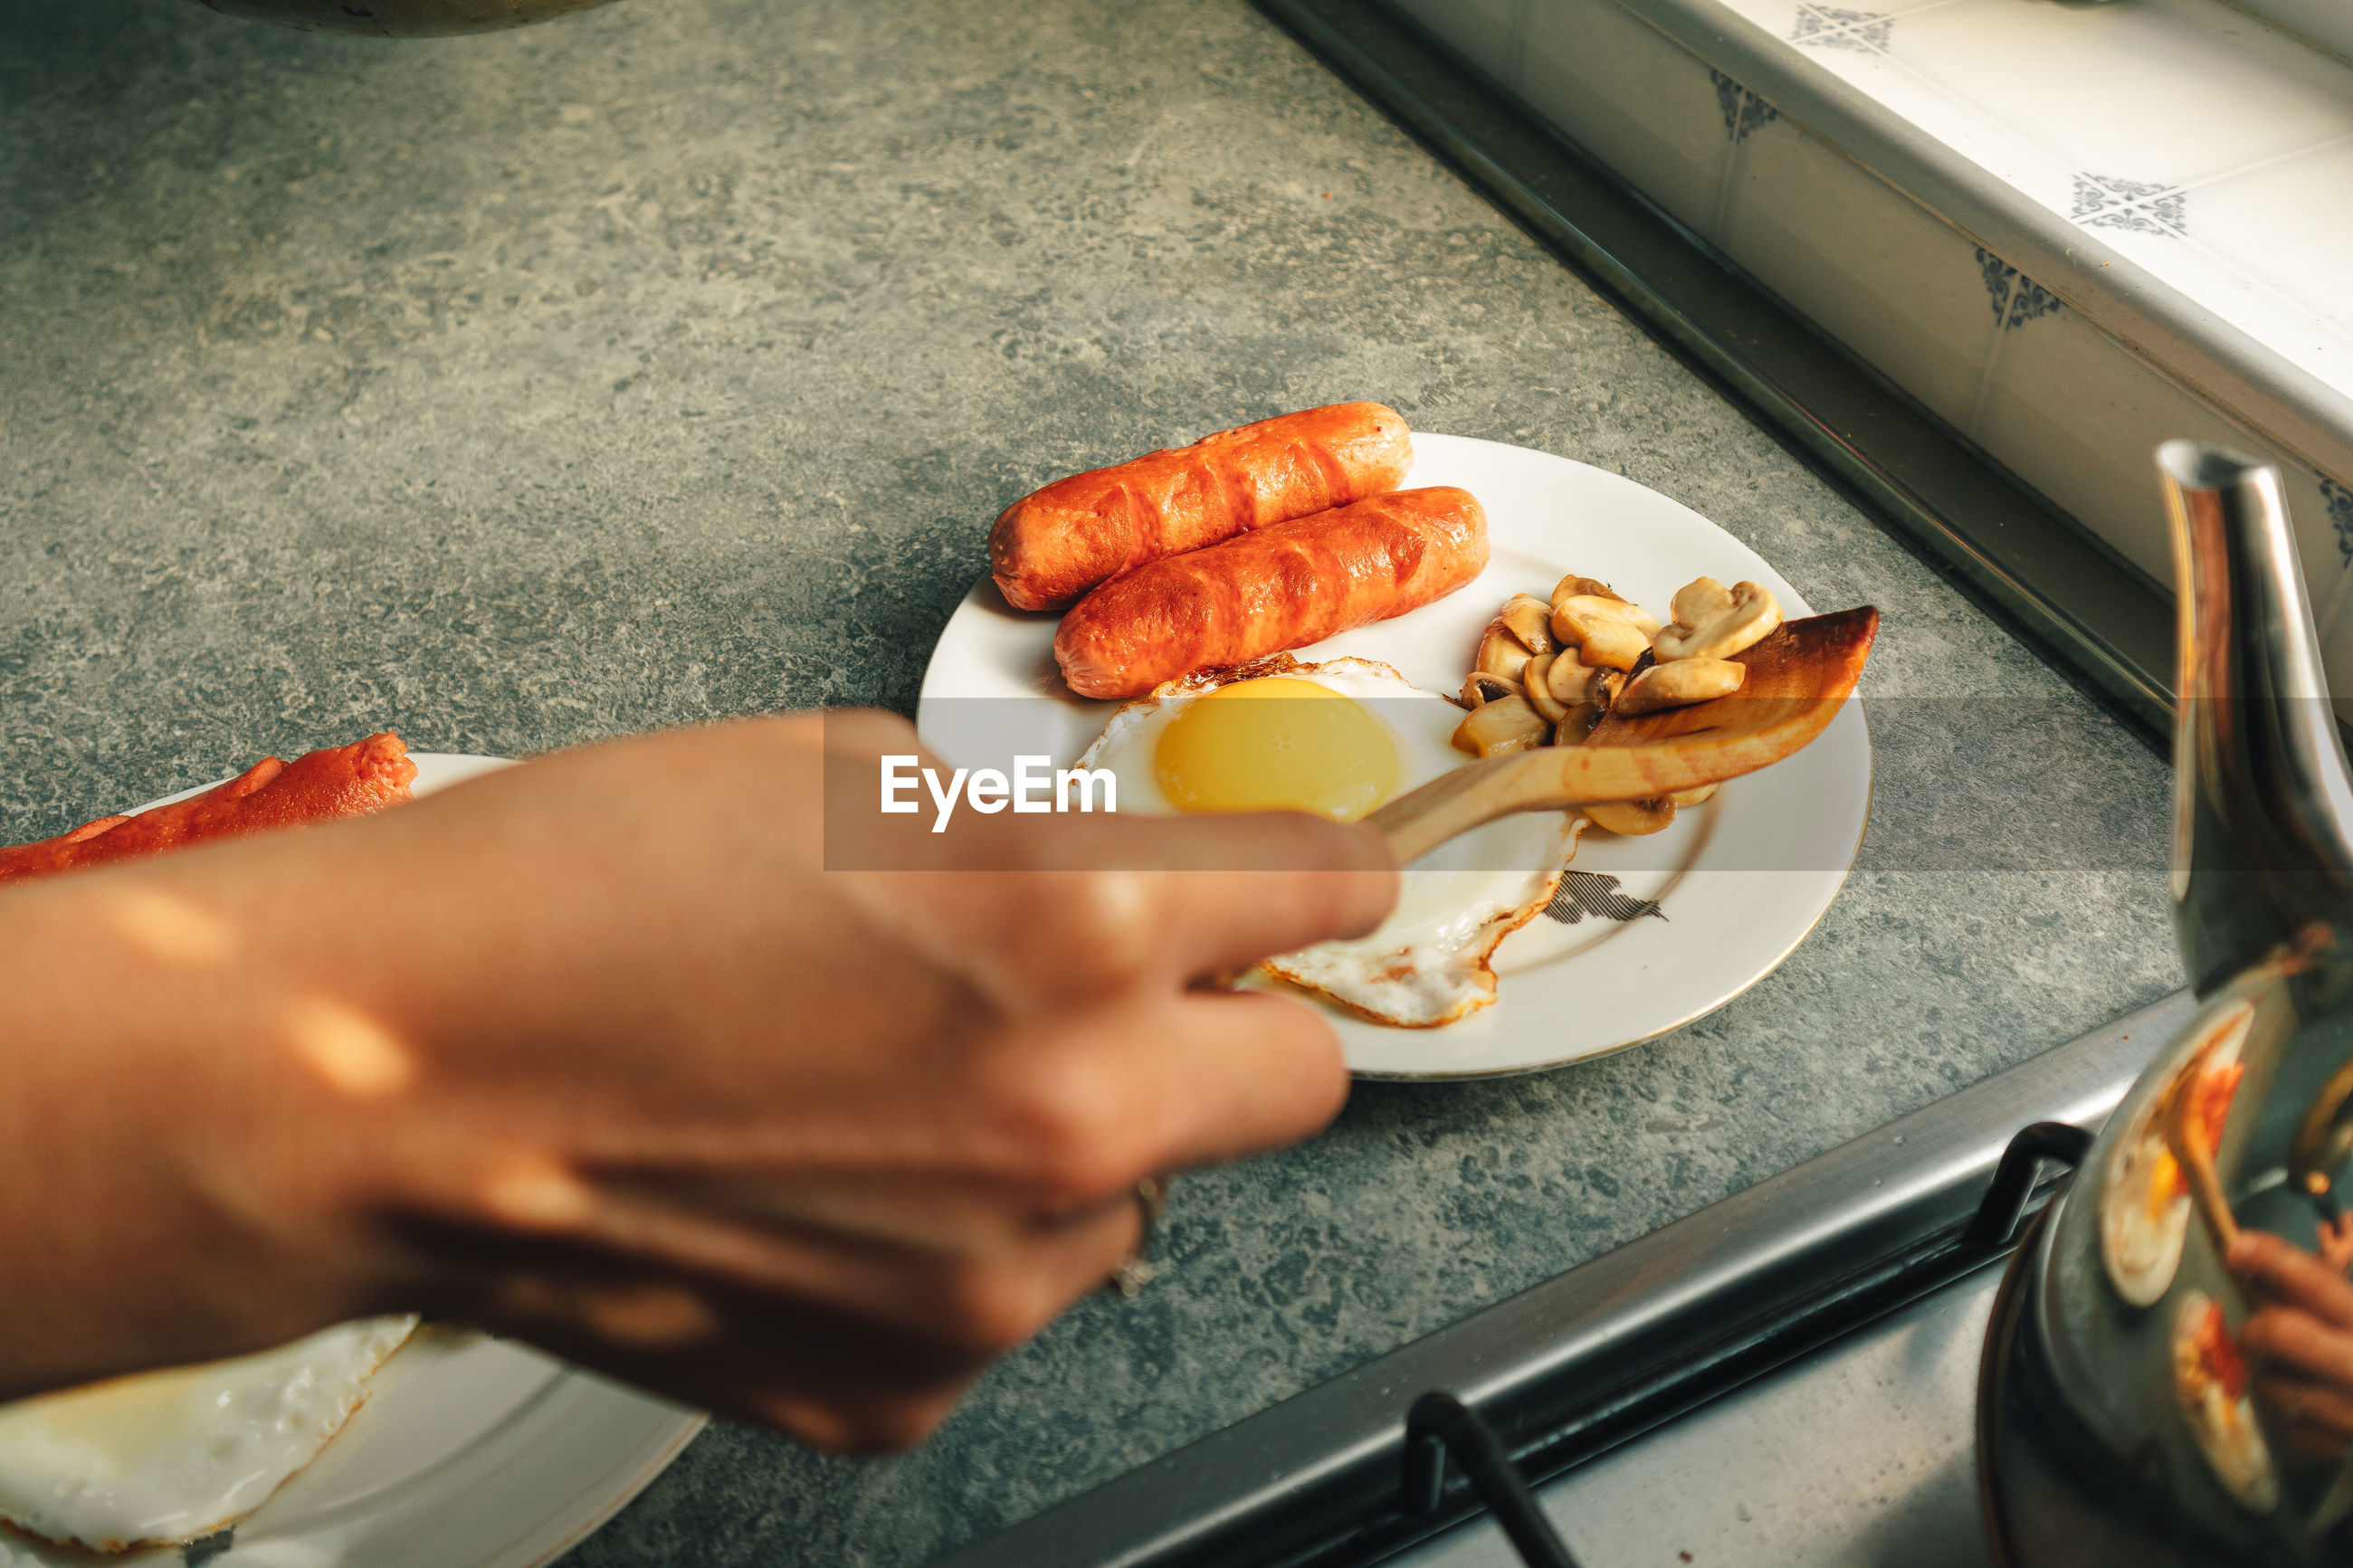 HIGH ANGLE VIEW OF PERSON HOLDING FOOD